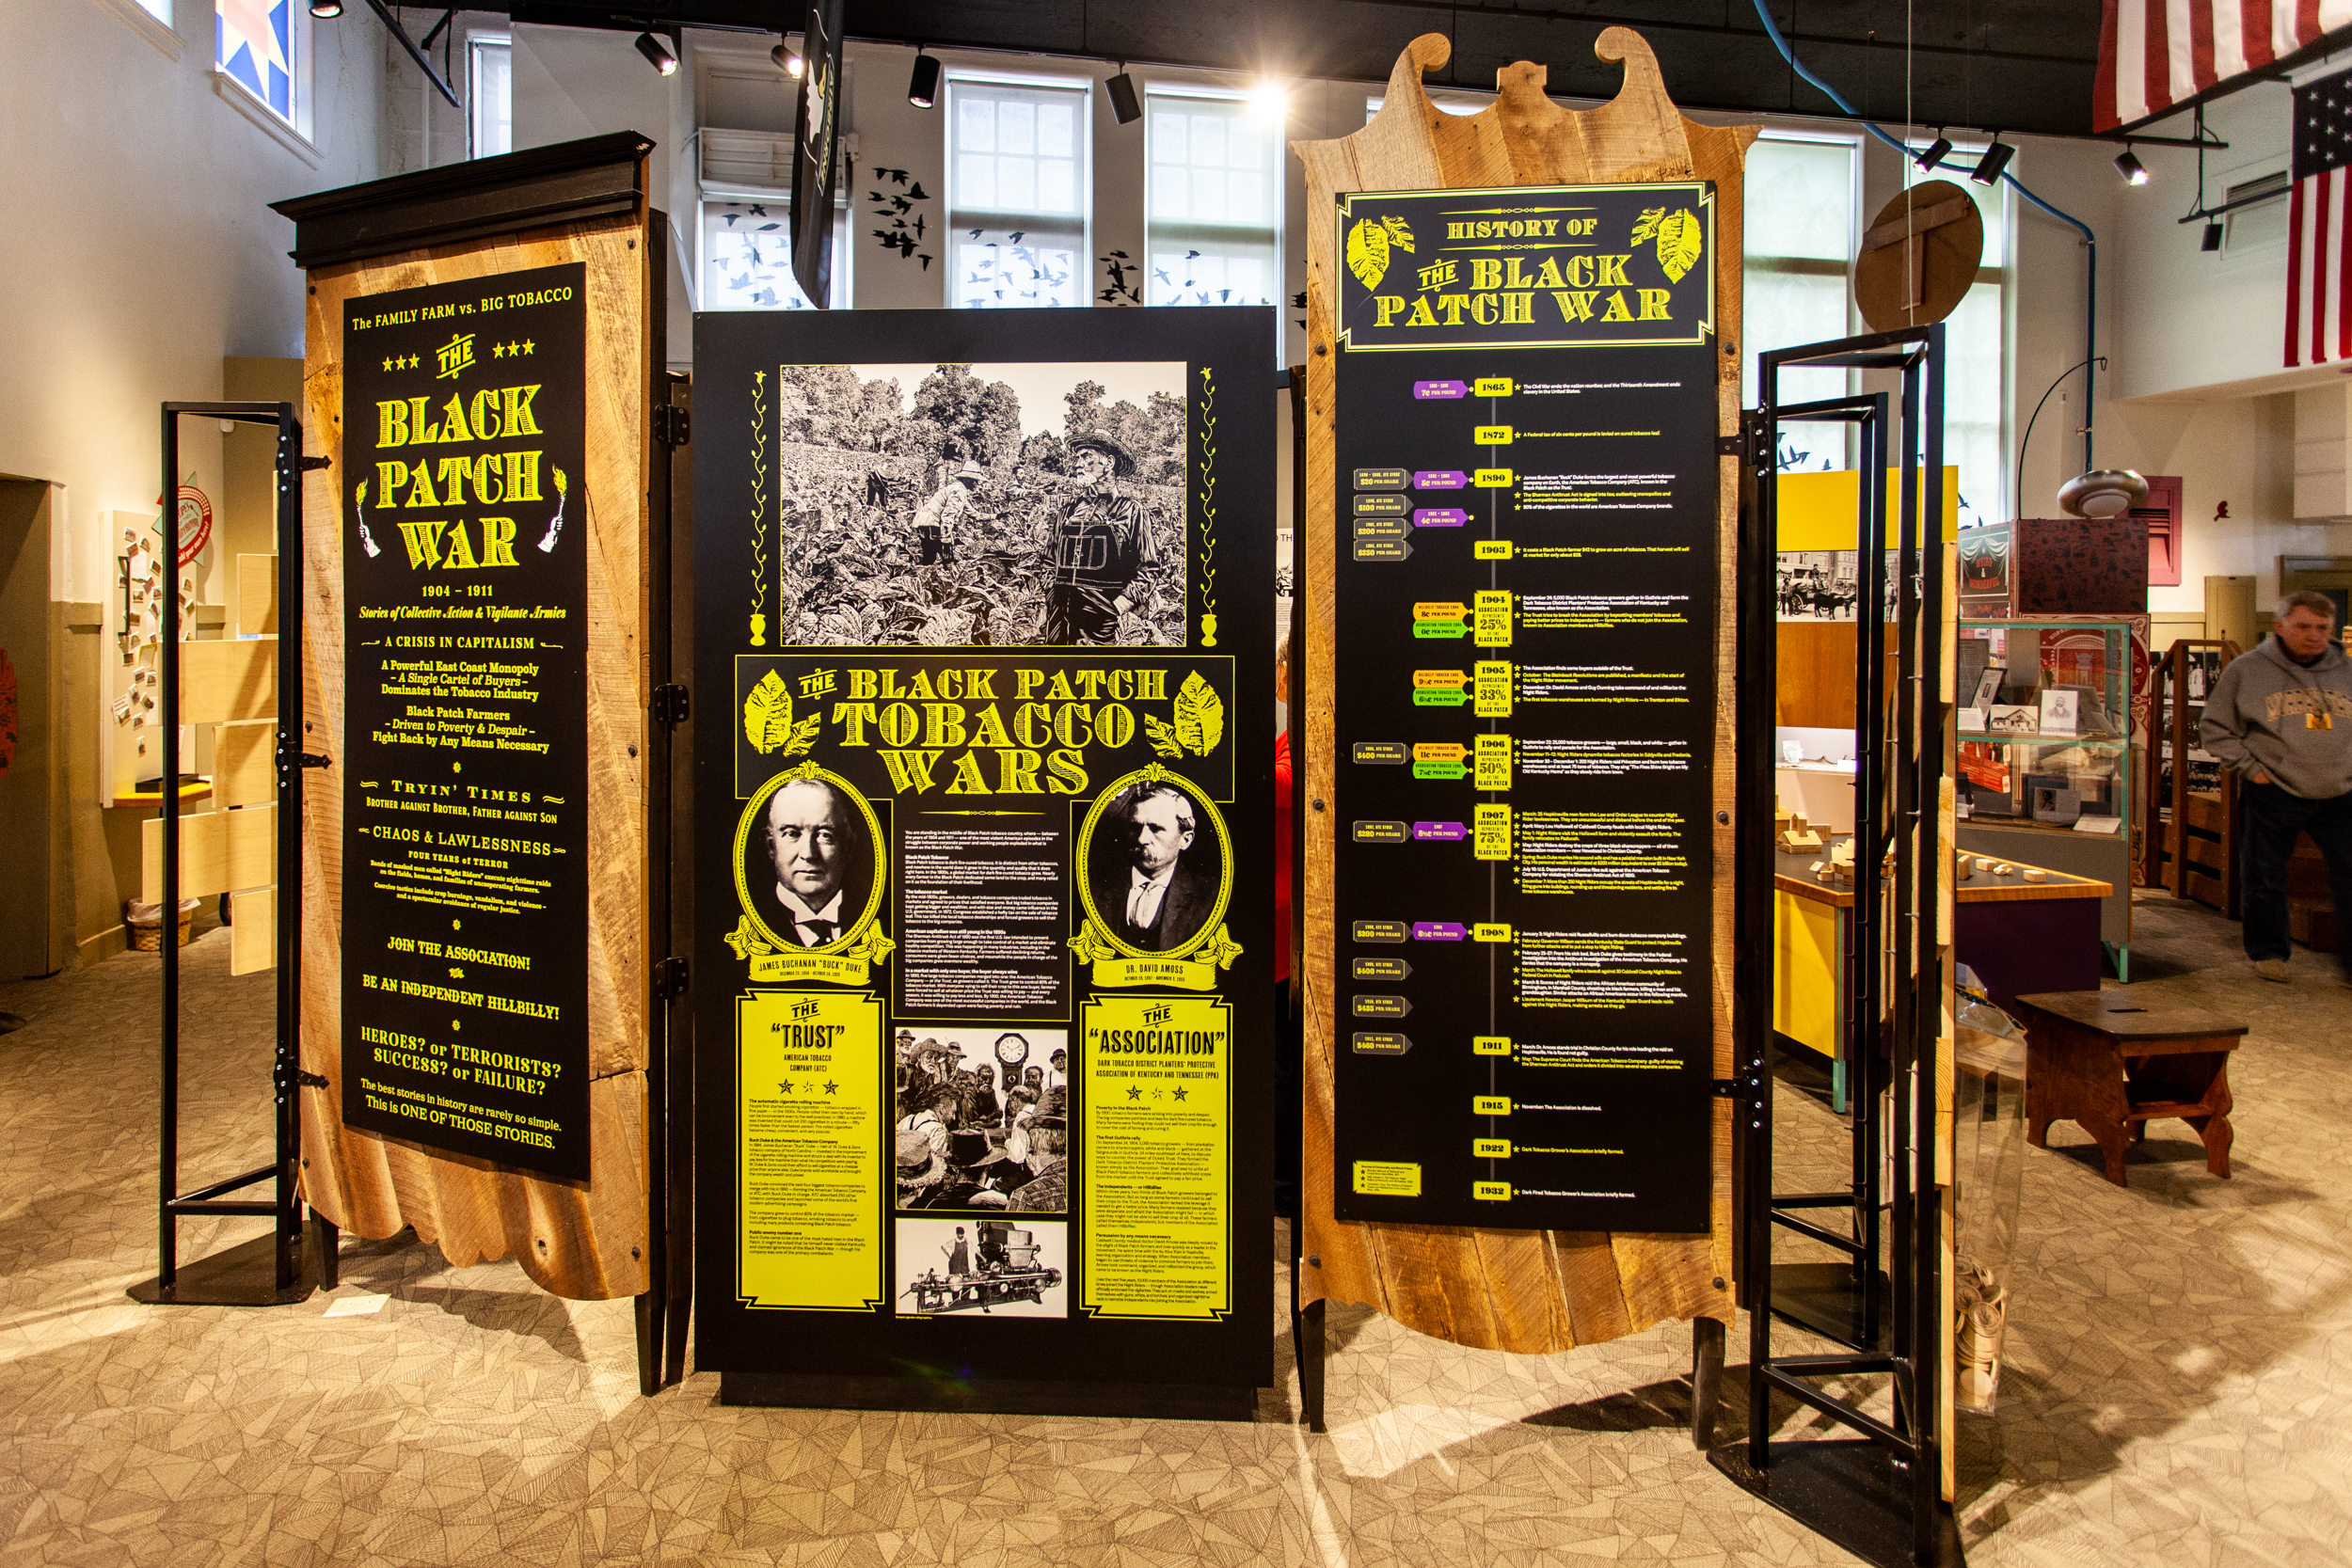 Black Patch War exhibit panels at the historic Pennyroyal Area Museum.